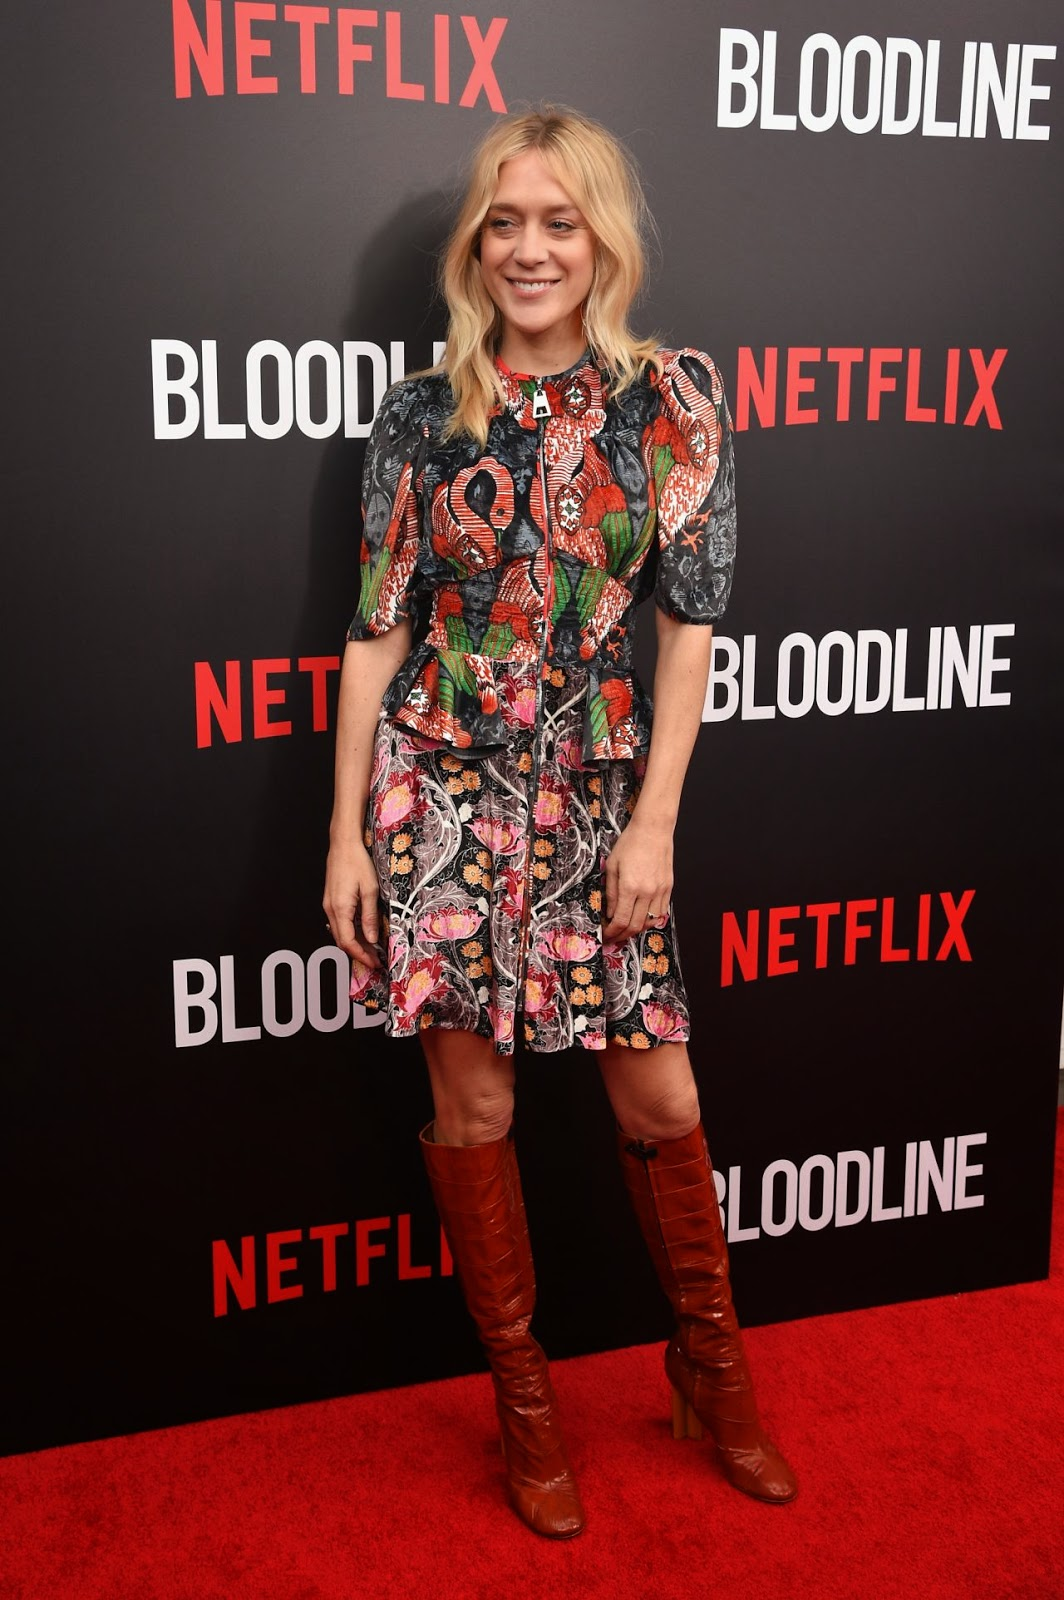 Actress, Fashion Designer, Model @ Chloe Sevigny - 'Bloodline' New York Series Premiere in NYC